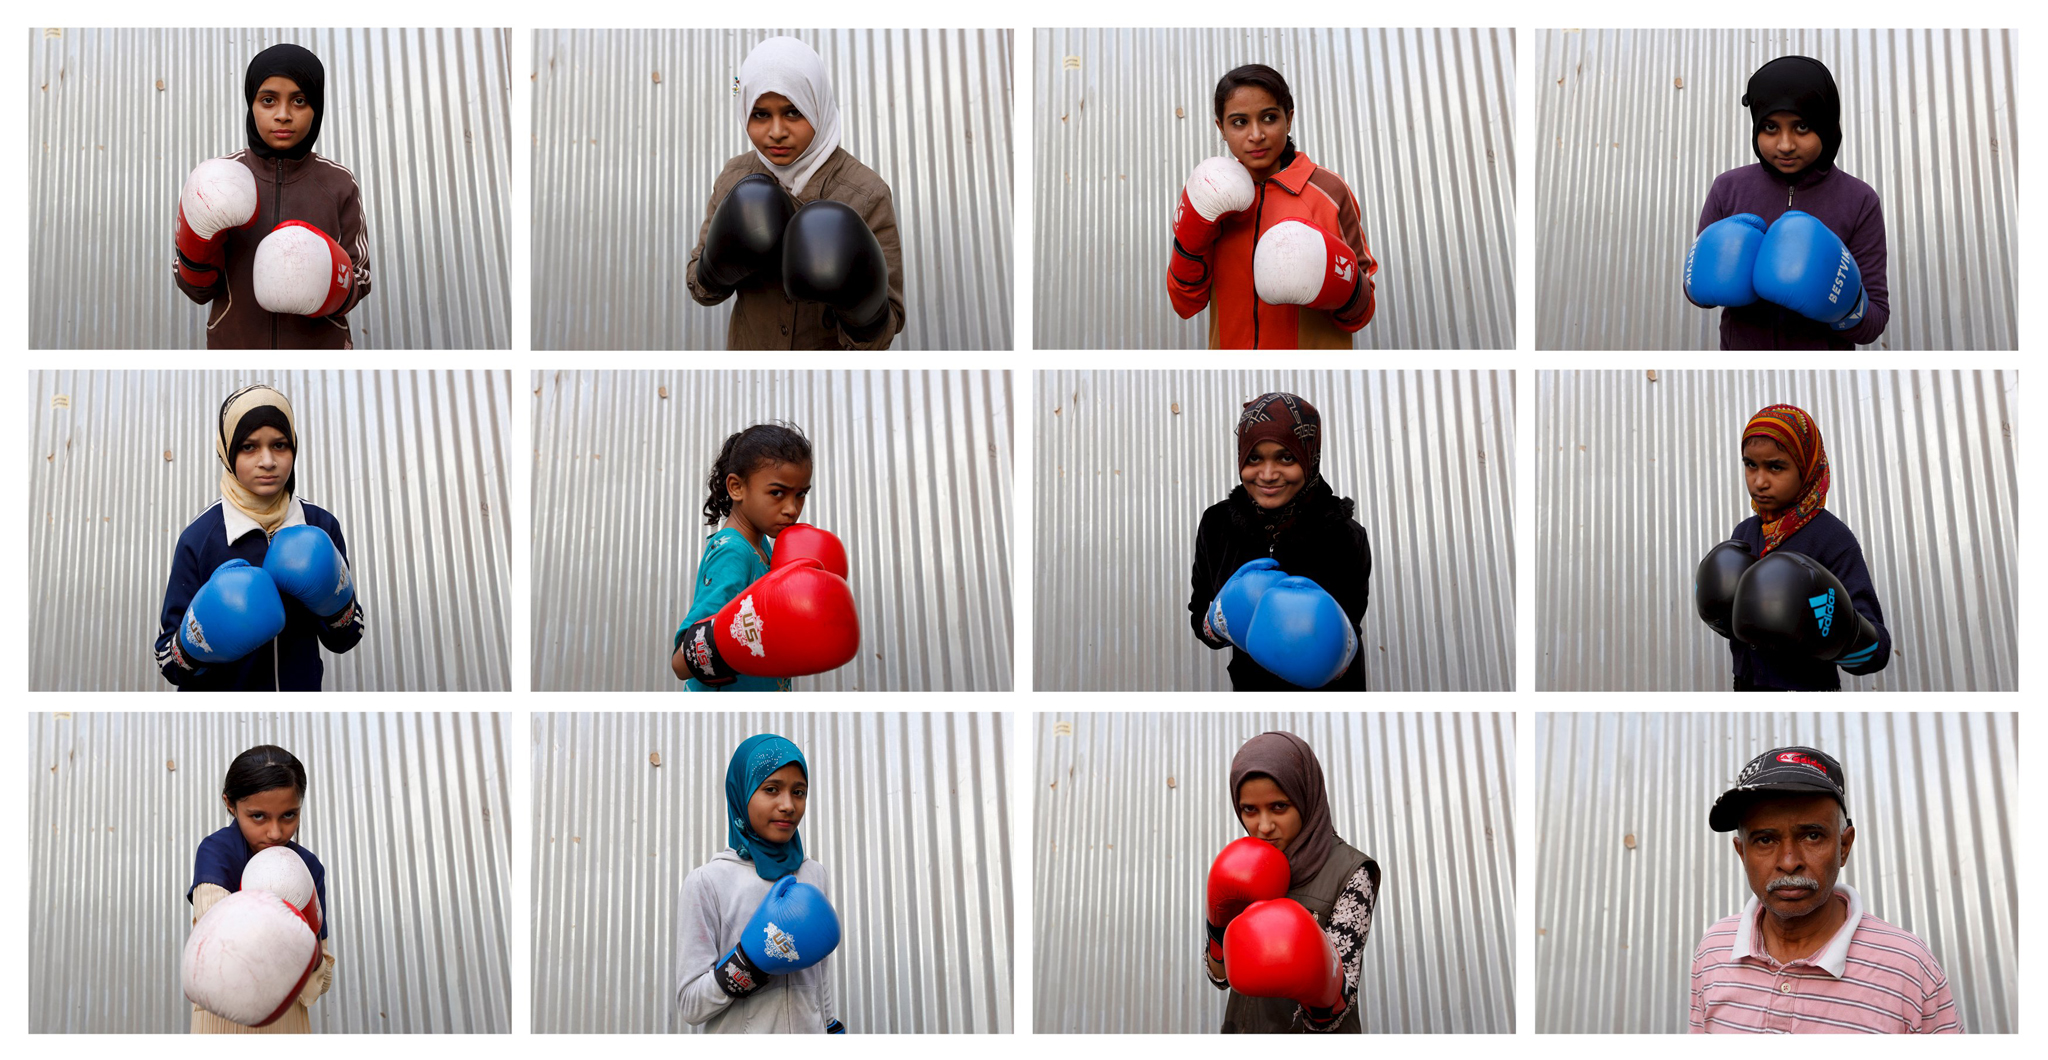 "Spotlight: Boxing for girls in Karachi...A combination photo shows students of coach Younus Qambrani posing with their boxing gloves at the first women's boxing coaching camp in Pak Shaheen Boxing Club in Karachi, Pakistan, February 20, 2016. For the past six months about a dozen girls, aged 8 to 17, have gone to the Pak Shine Boxing Club after school to practice their jabs, hooks and upper cuts. Pakistani women have been training as boxers in small numbers and competed in the South Asian Games last year, said Younis Qambrani, the coach who founded the club in 1992 in the Karachi neighbourhood of Lyari, better known for internecine gang warfare than for breaking glass ceilings.  REUTERS/Akhtar Soomro SEARCH ""THE WIDER IMAGE"" FOR ALL STORIES"